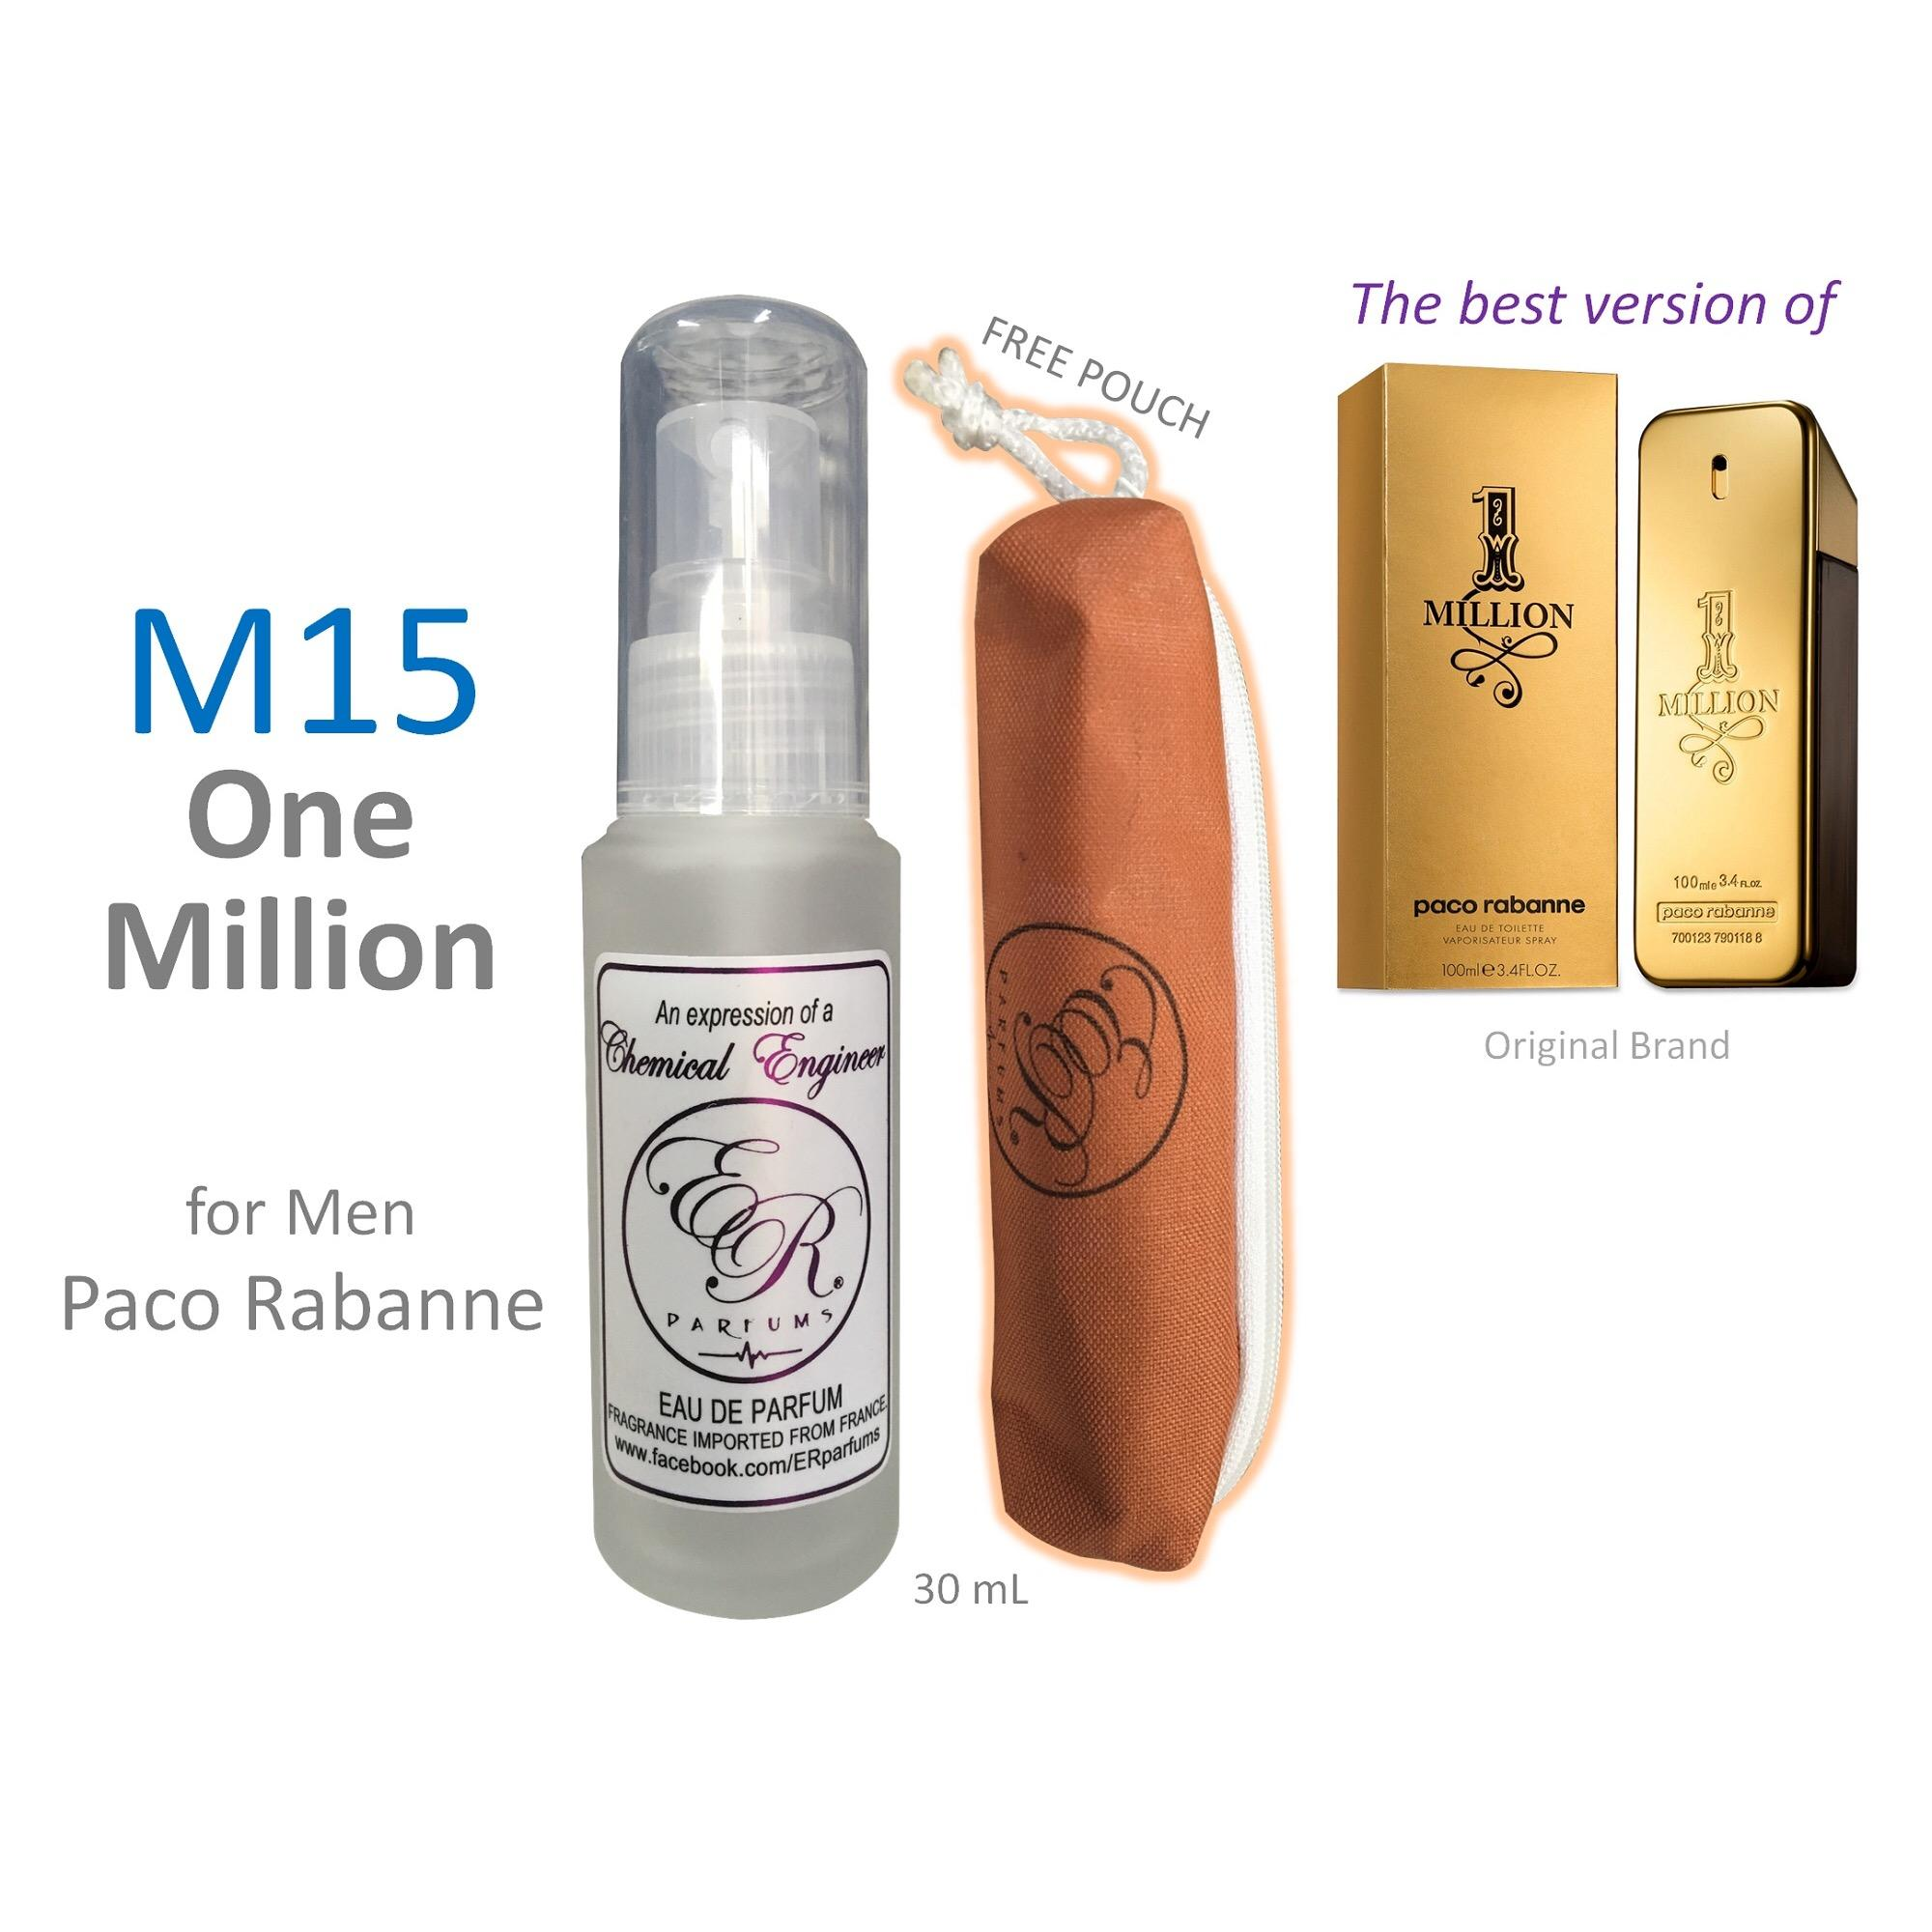 ER PARFUMS M15 One Million for Men by Paco Rabanne 1 piece 30 mL perfume with free pouch (Best Seller) - thumbnail